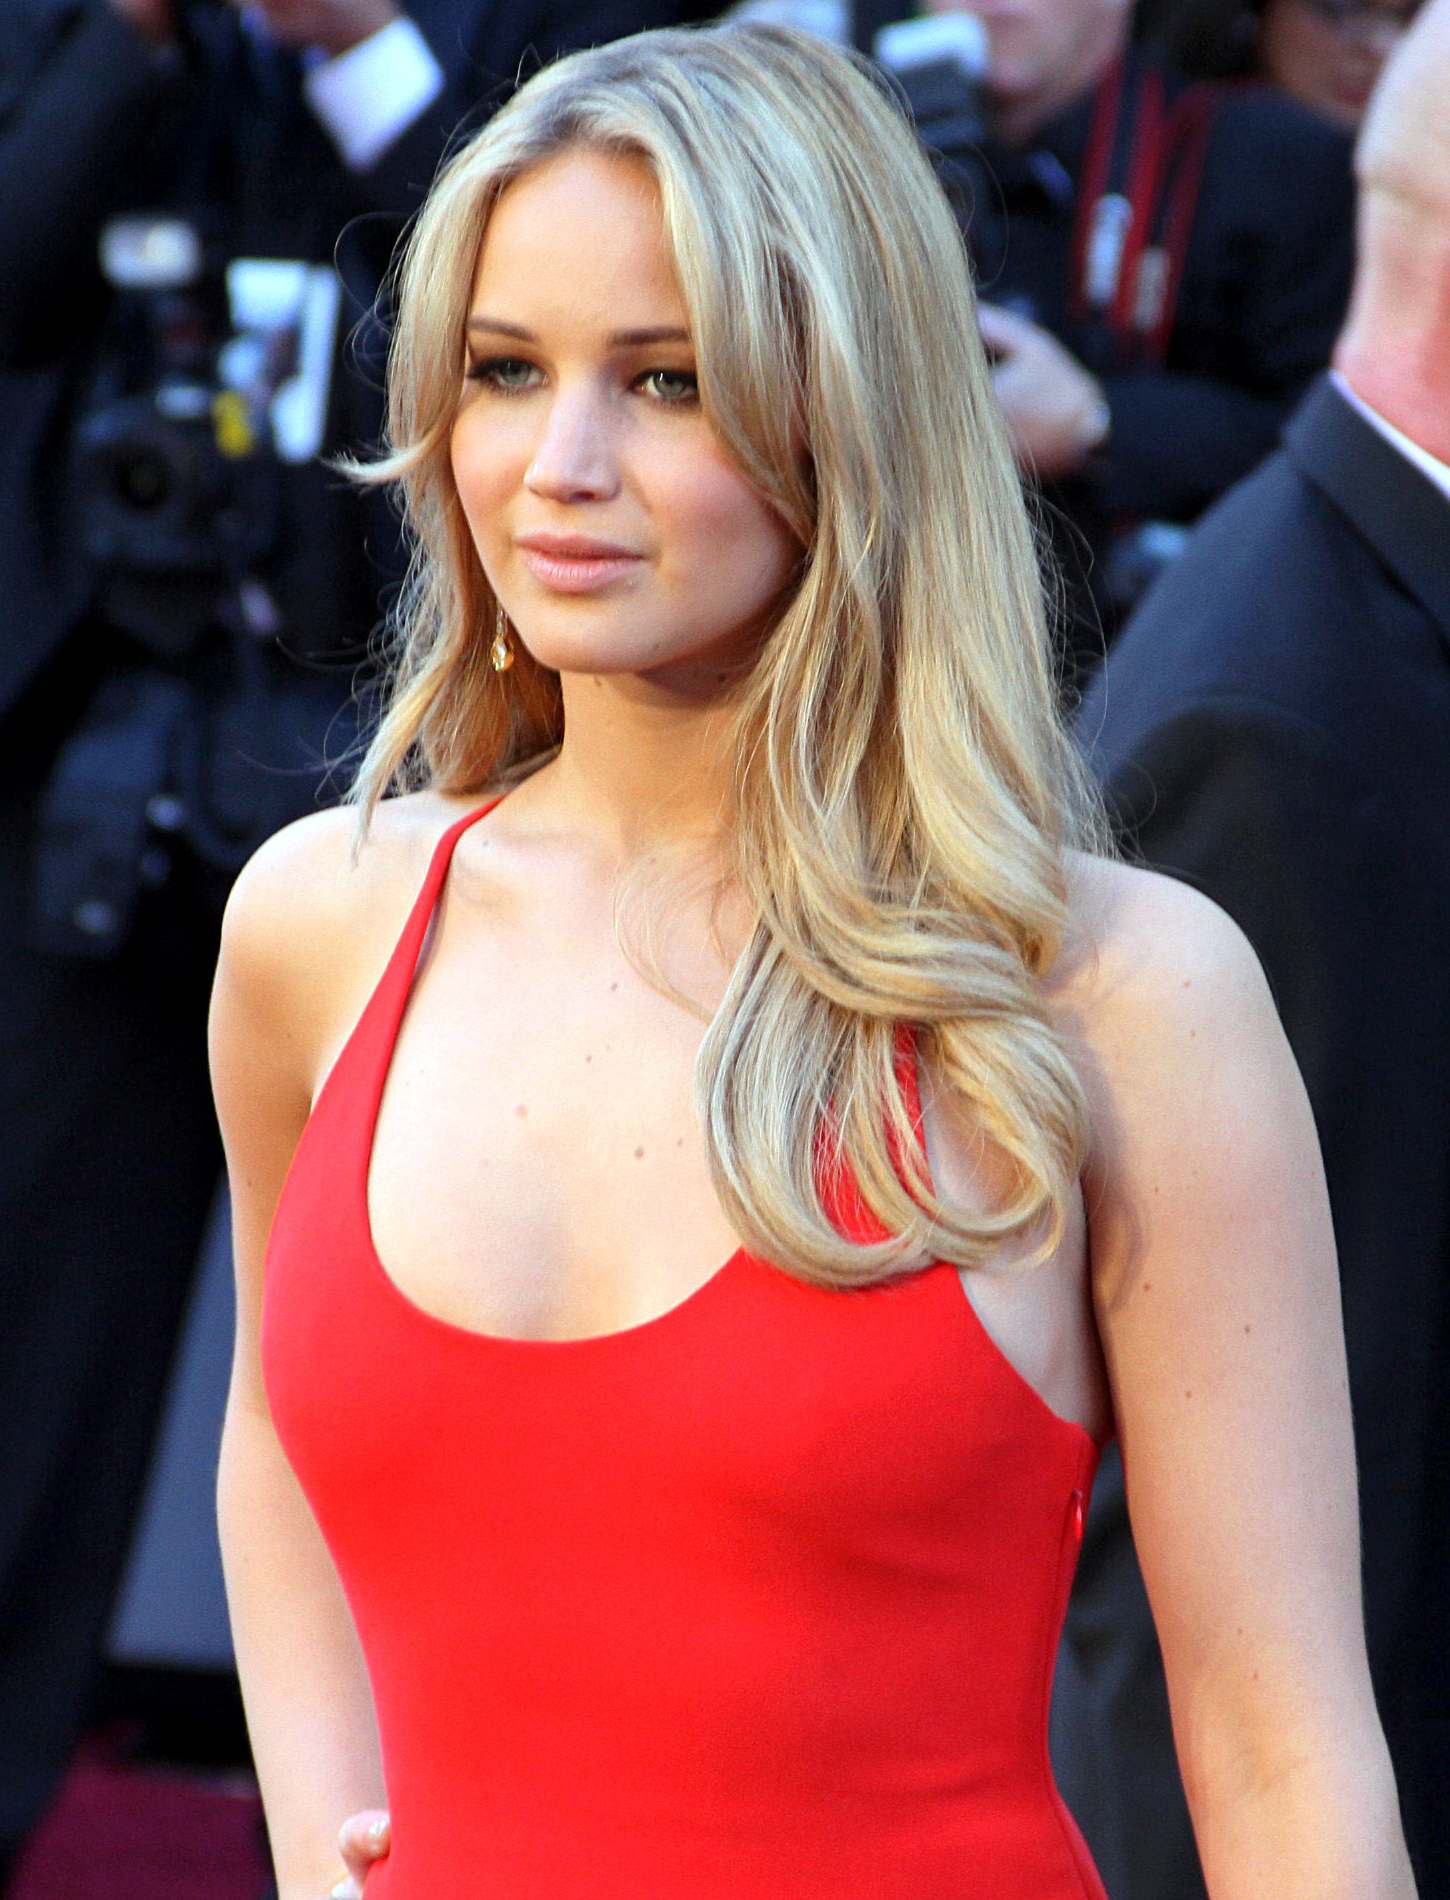 Jennifer Lawrence, be my queen